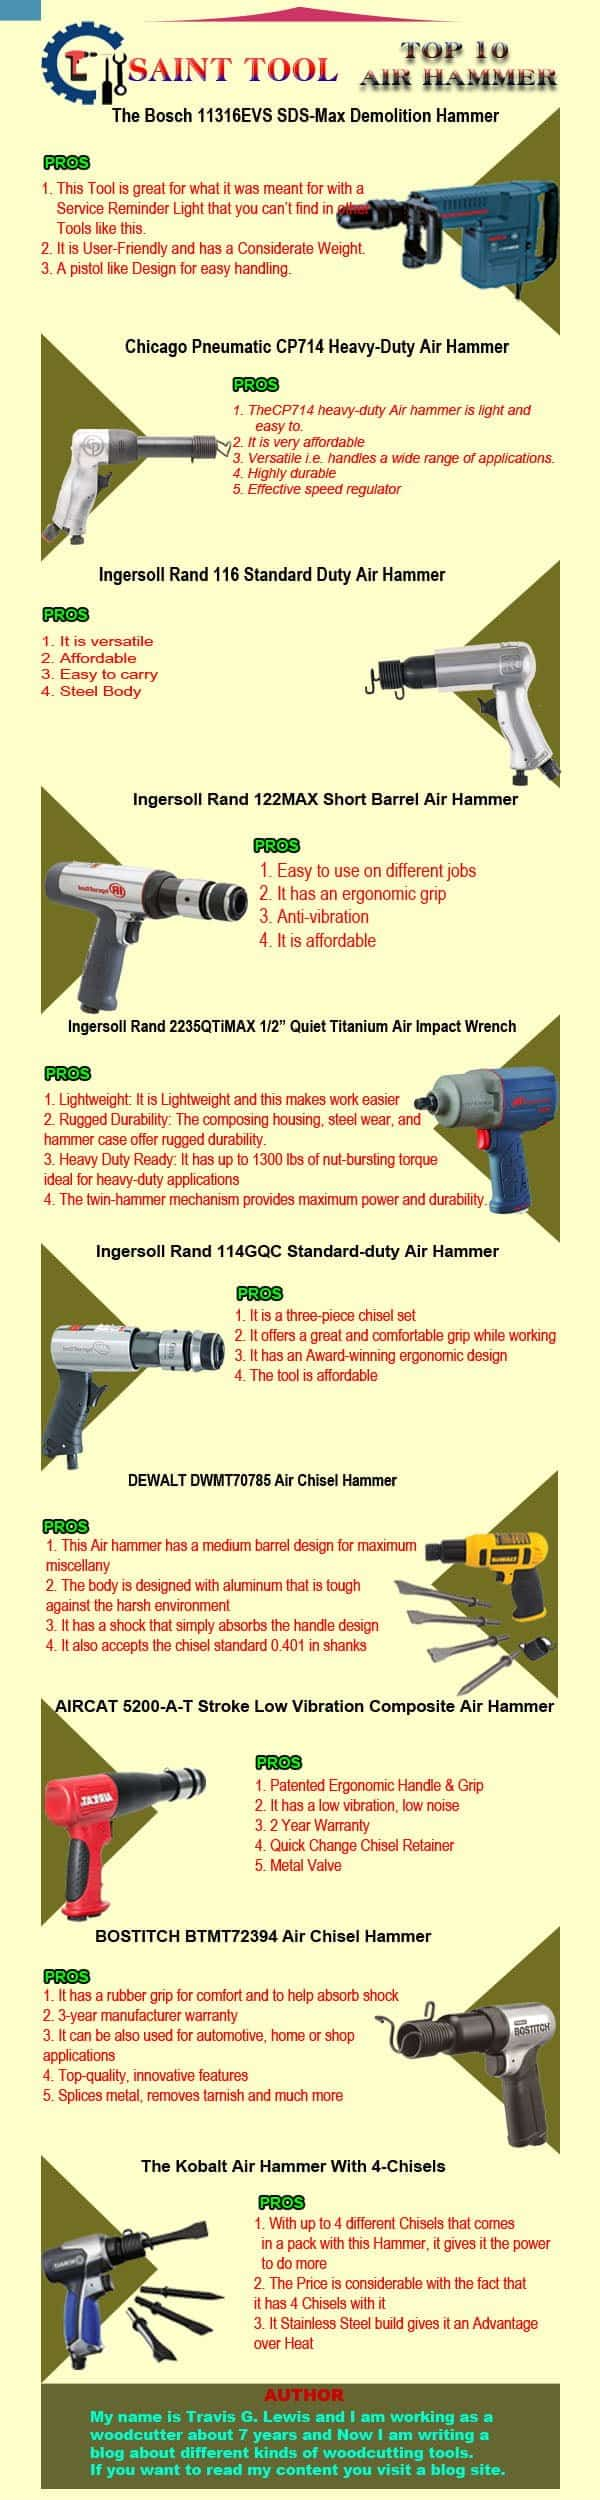 Hardest Hitting Air Hammer